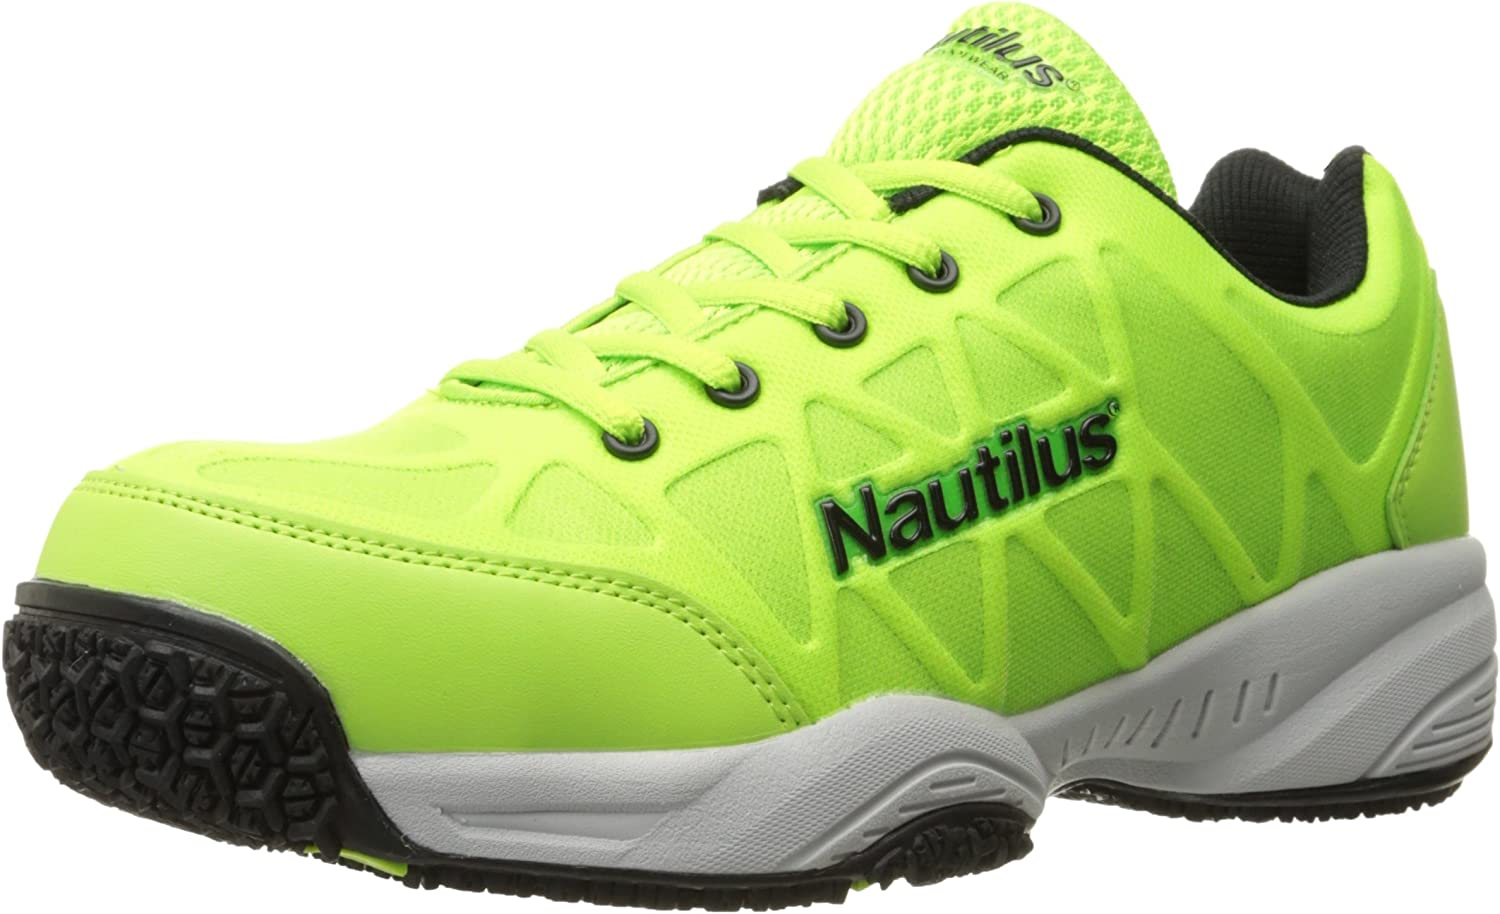 Nautilus 2115 Comp Toe Light Weight Slip Resistant Athletic shoes